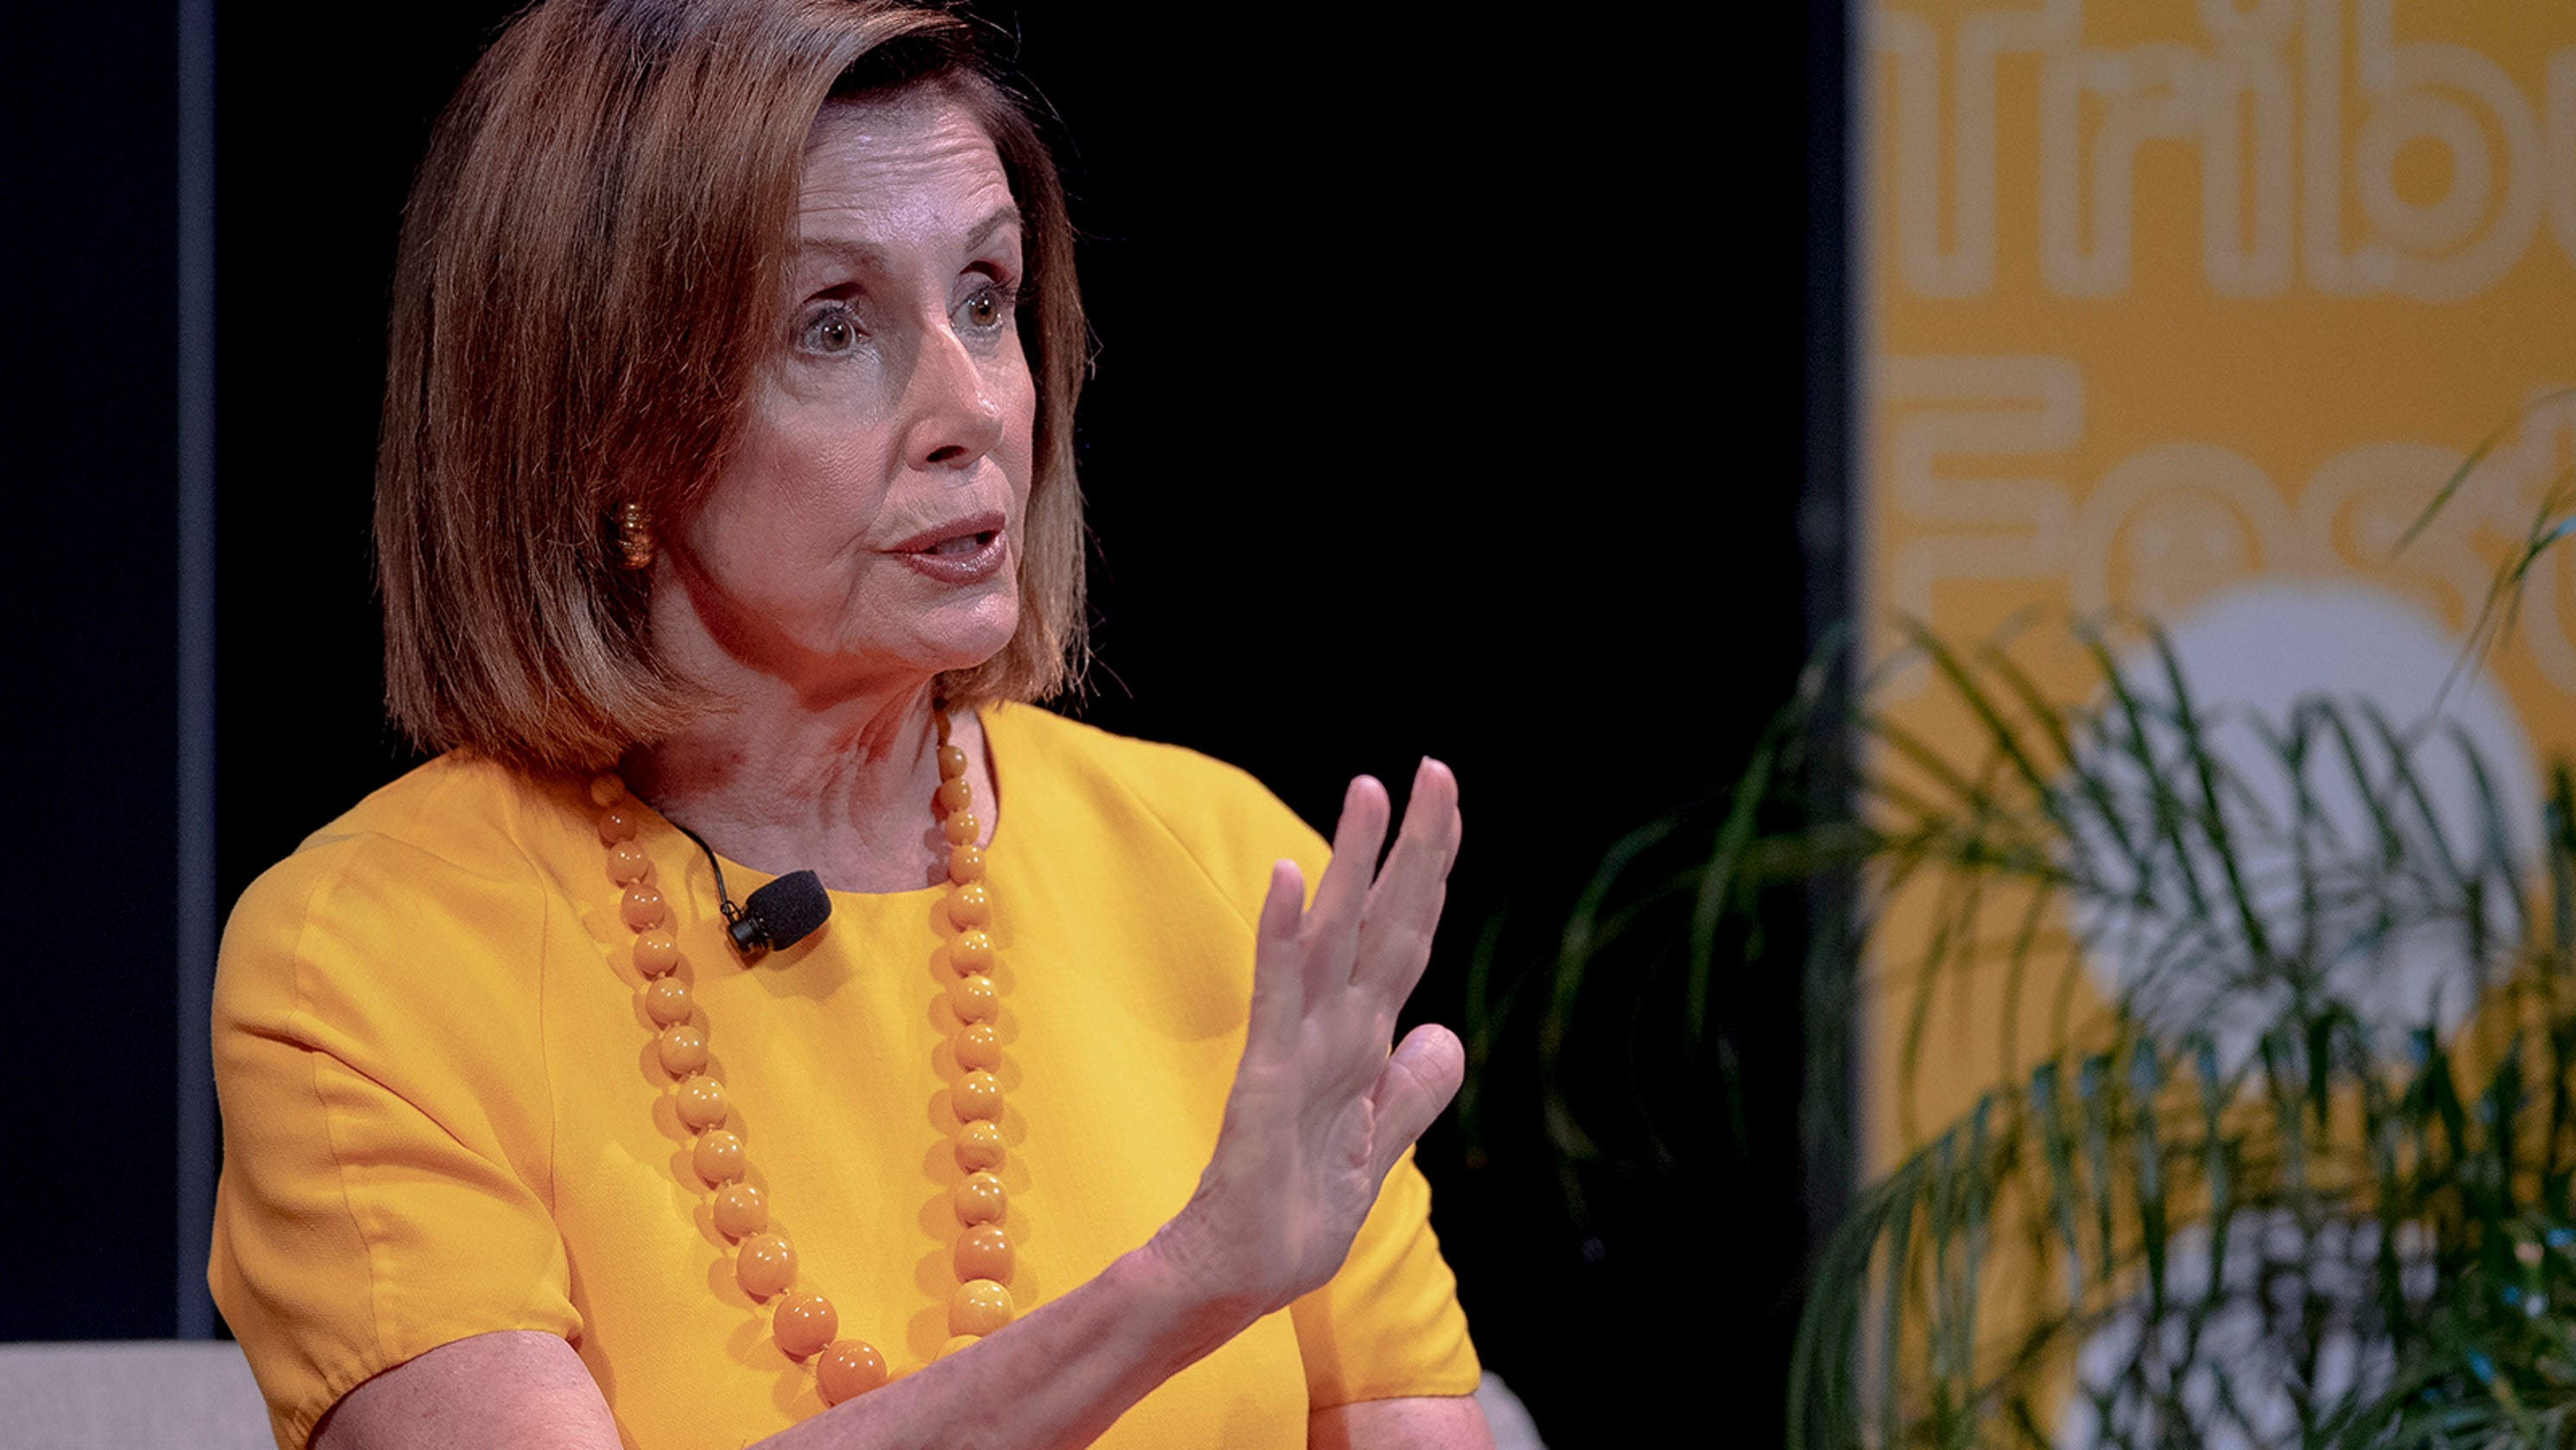 'It doesn't matter': Pelosi not concerned if Democrats lose majority over impeachment thumbnail